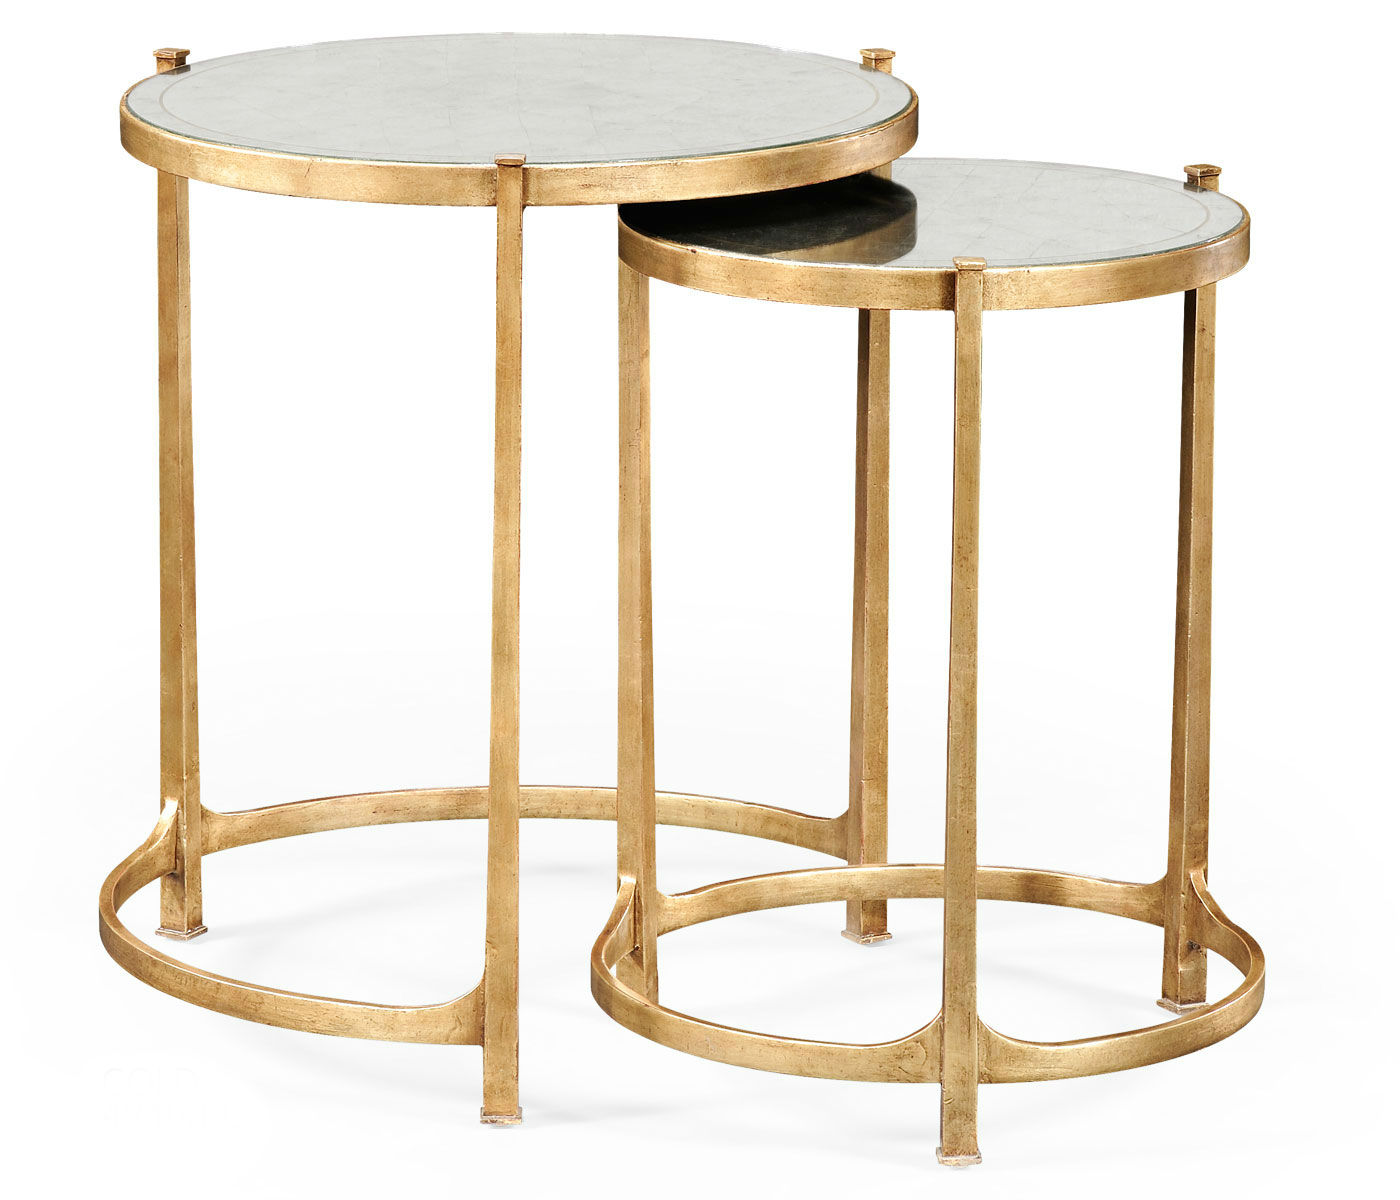 living cabinet threshold tables room round target table accent bench decorative gold antique storage white modern tall furniture glass kijiji outdoor for and full size wooden